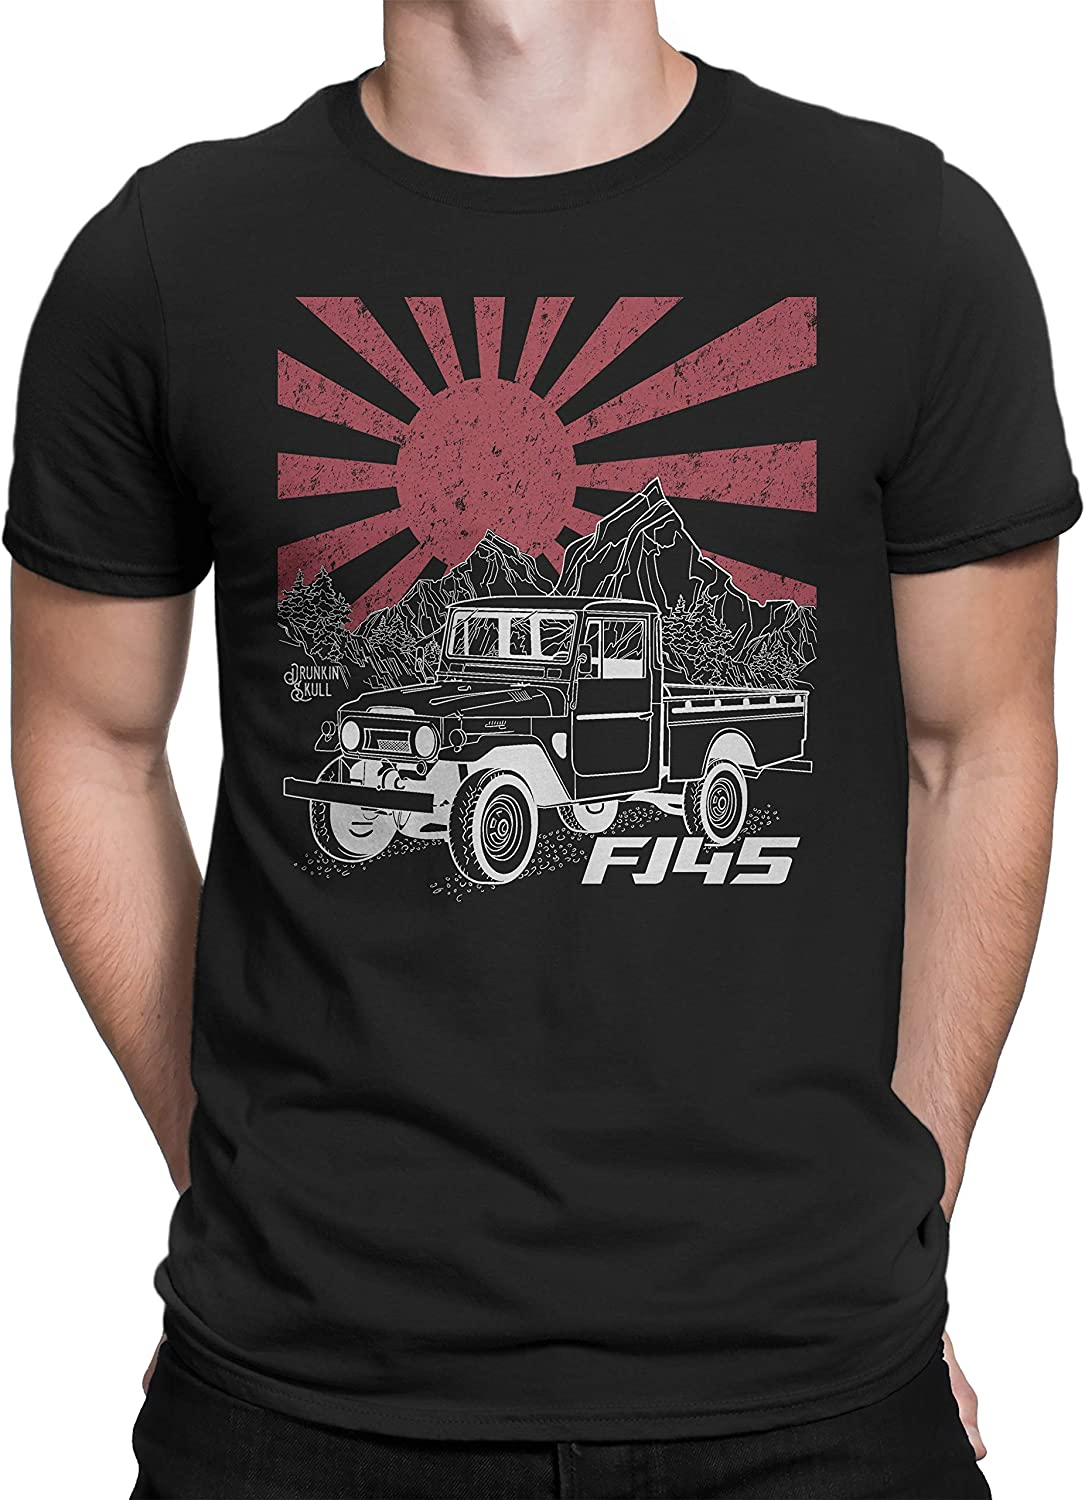 FJ45 Under The Rising Sun T-Shirt